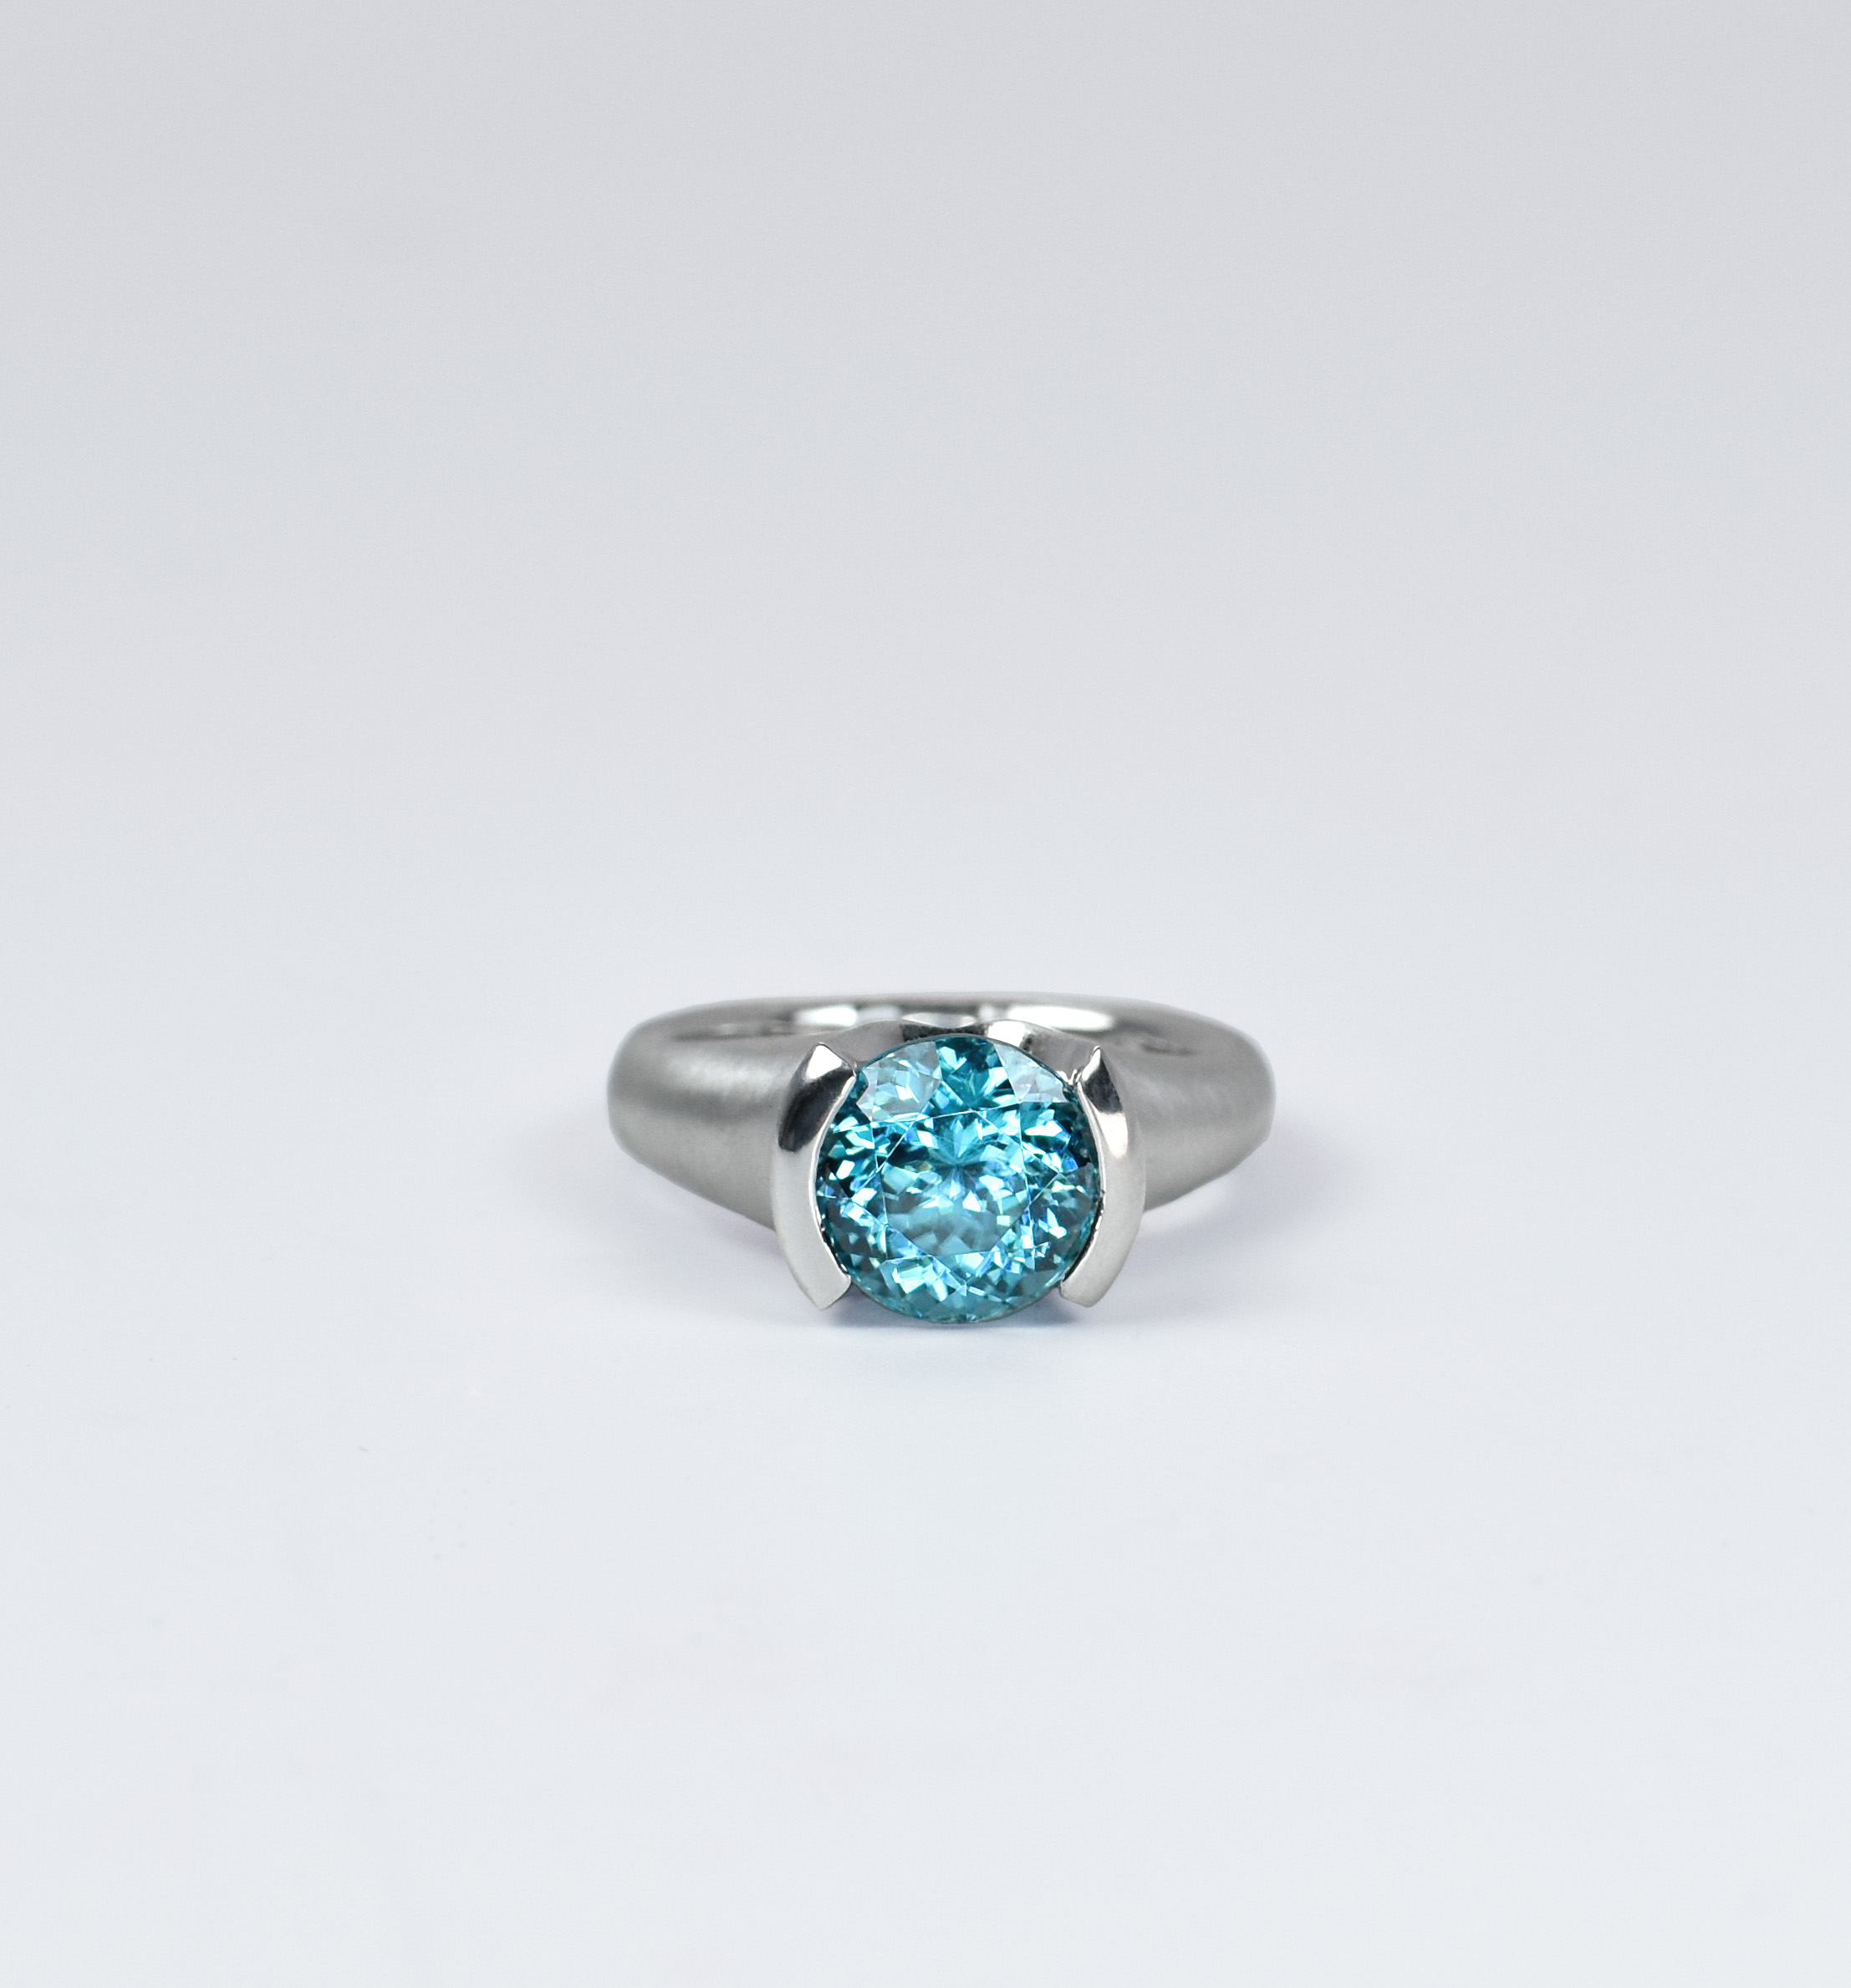 4.42 carat Round Portugese Cut Natural Blue Zircon set in a semi-bezel. Rounded band is a satin finish, while the semi-bezel is polished. 18k white gold.  All hand made, in-house by Dell Taylor